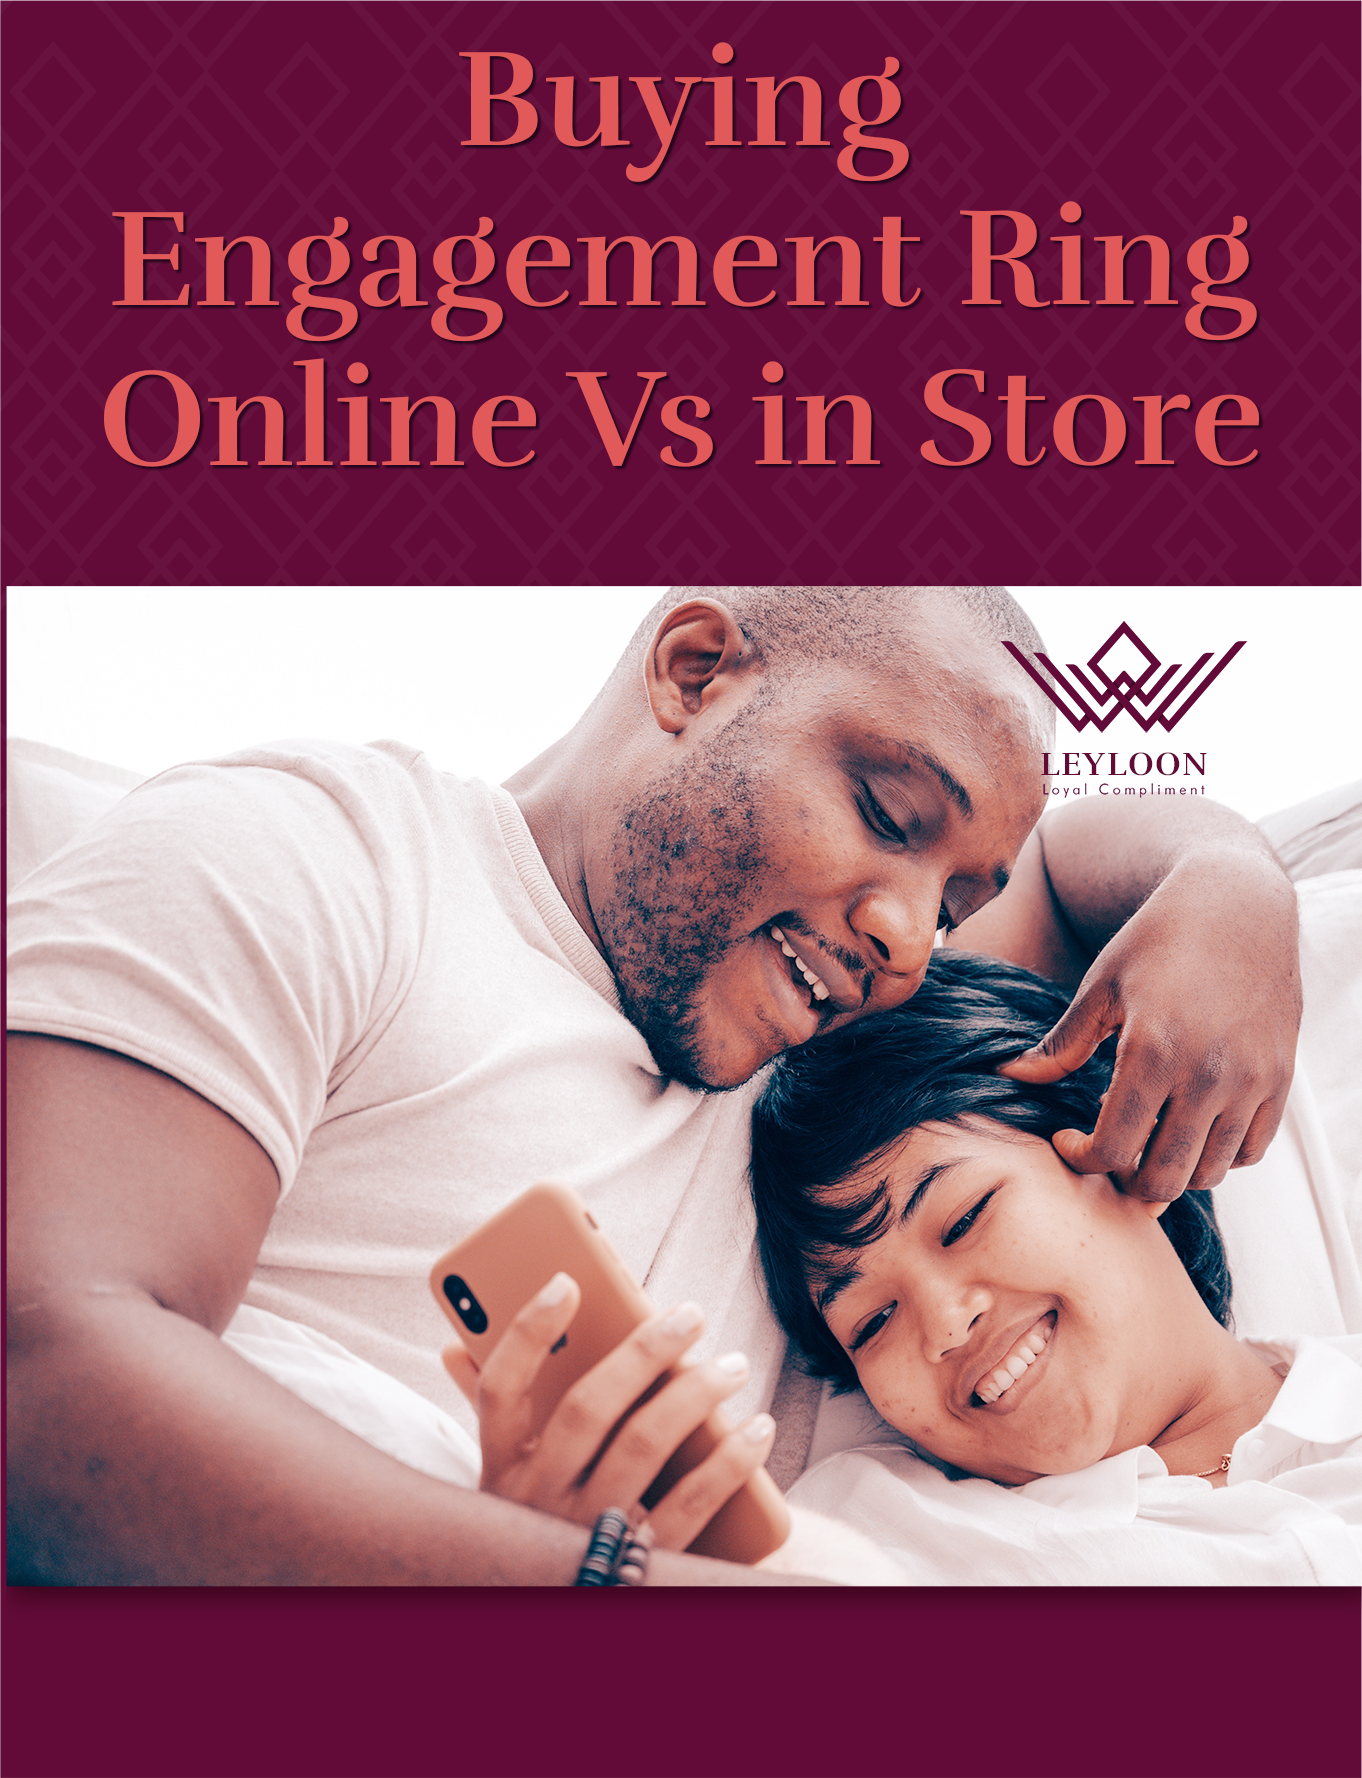 Buying Engagement Ring Online Vs in Store